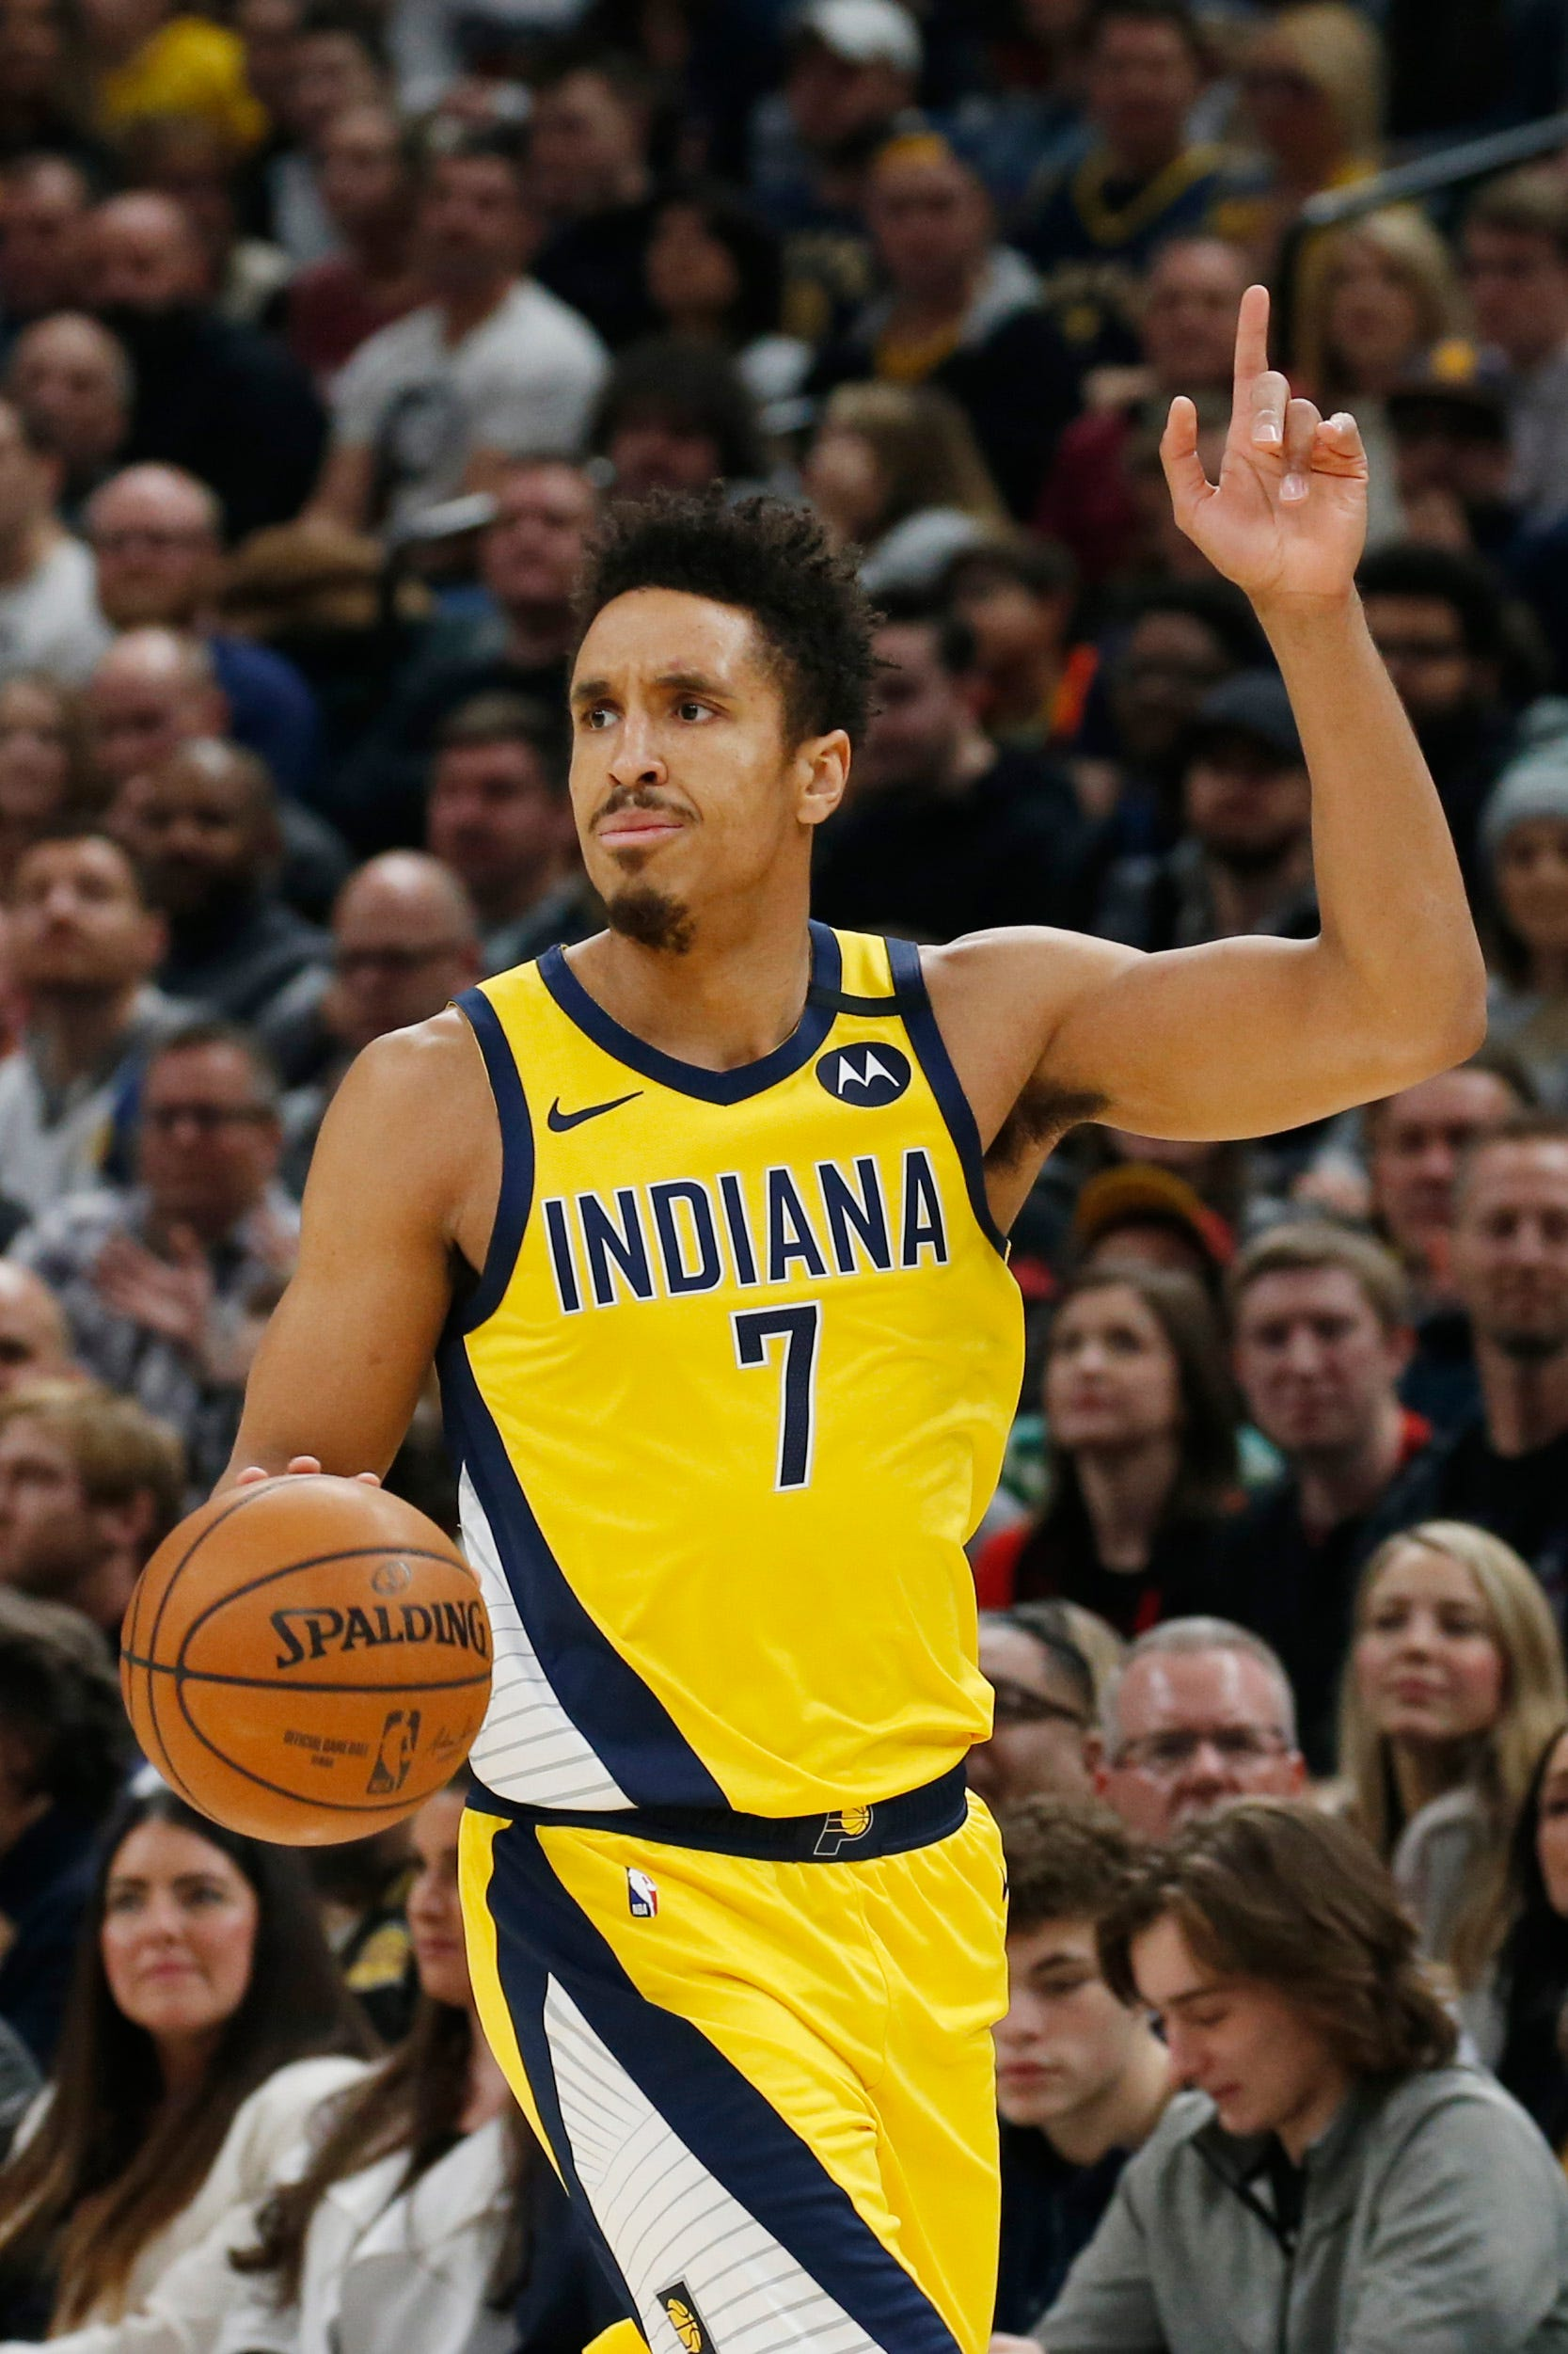 The 'sky's the limit' says Pacers' Brogdon